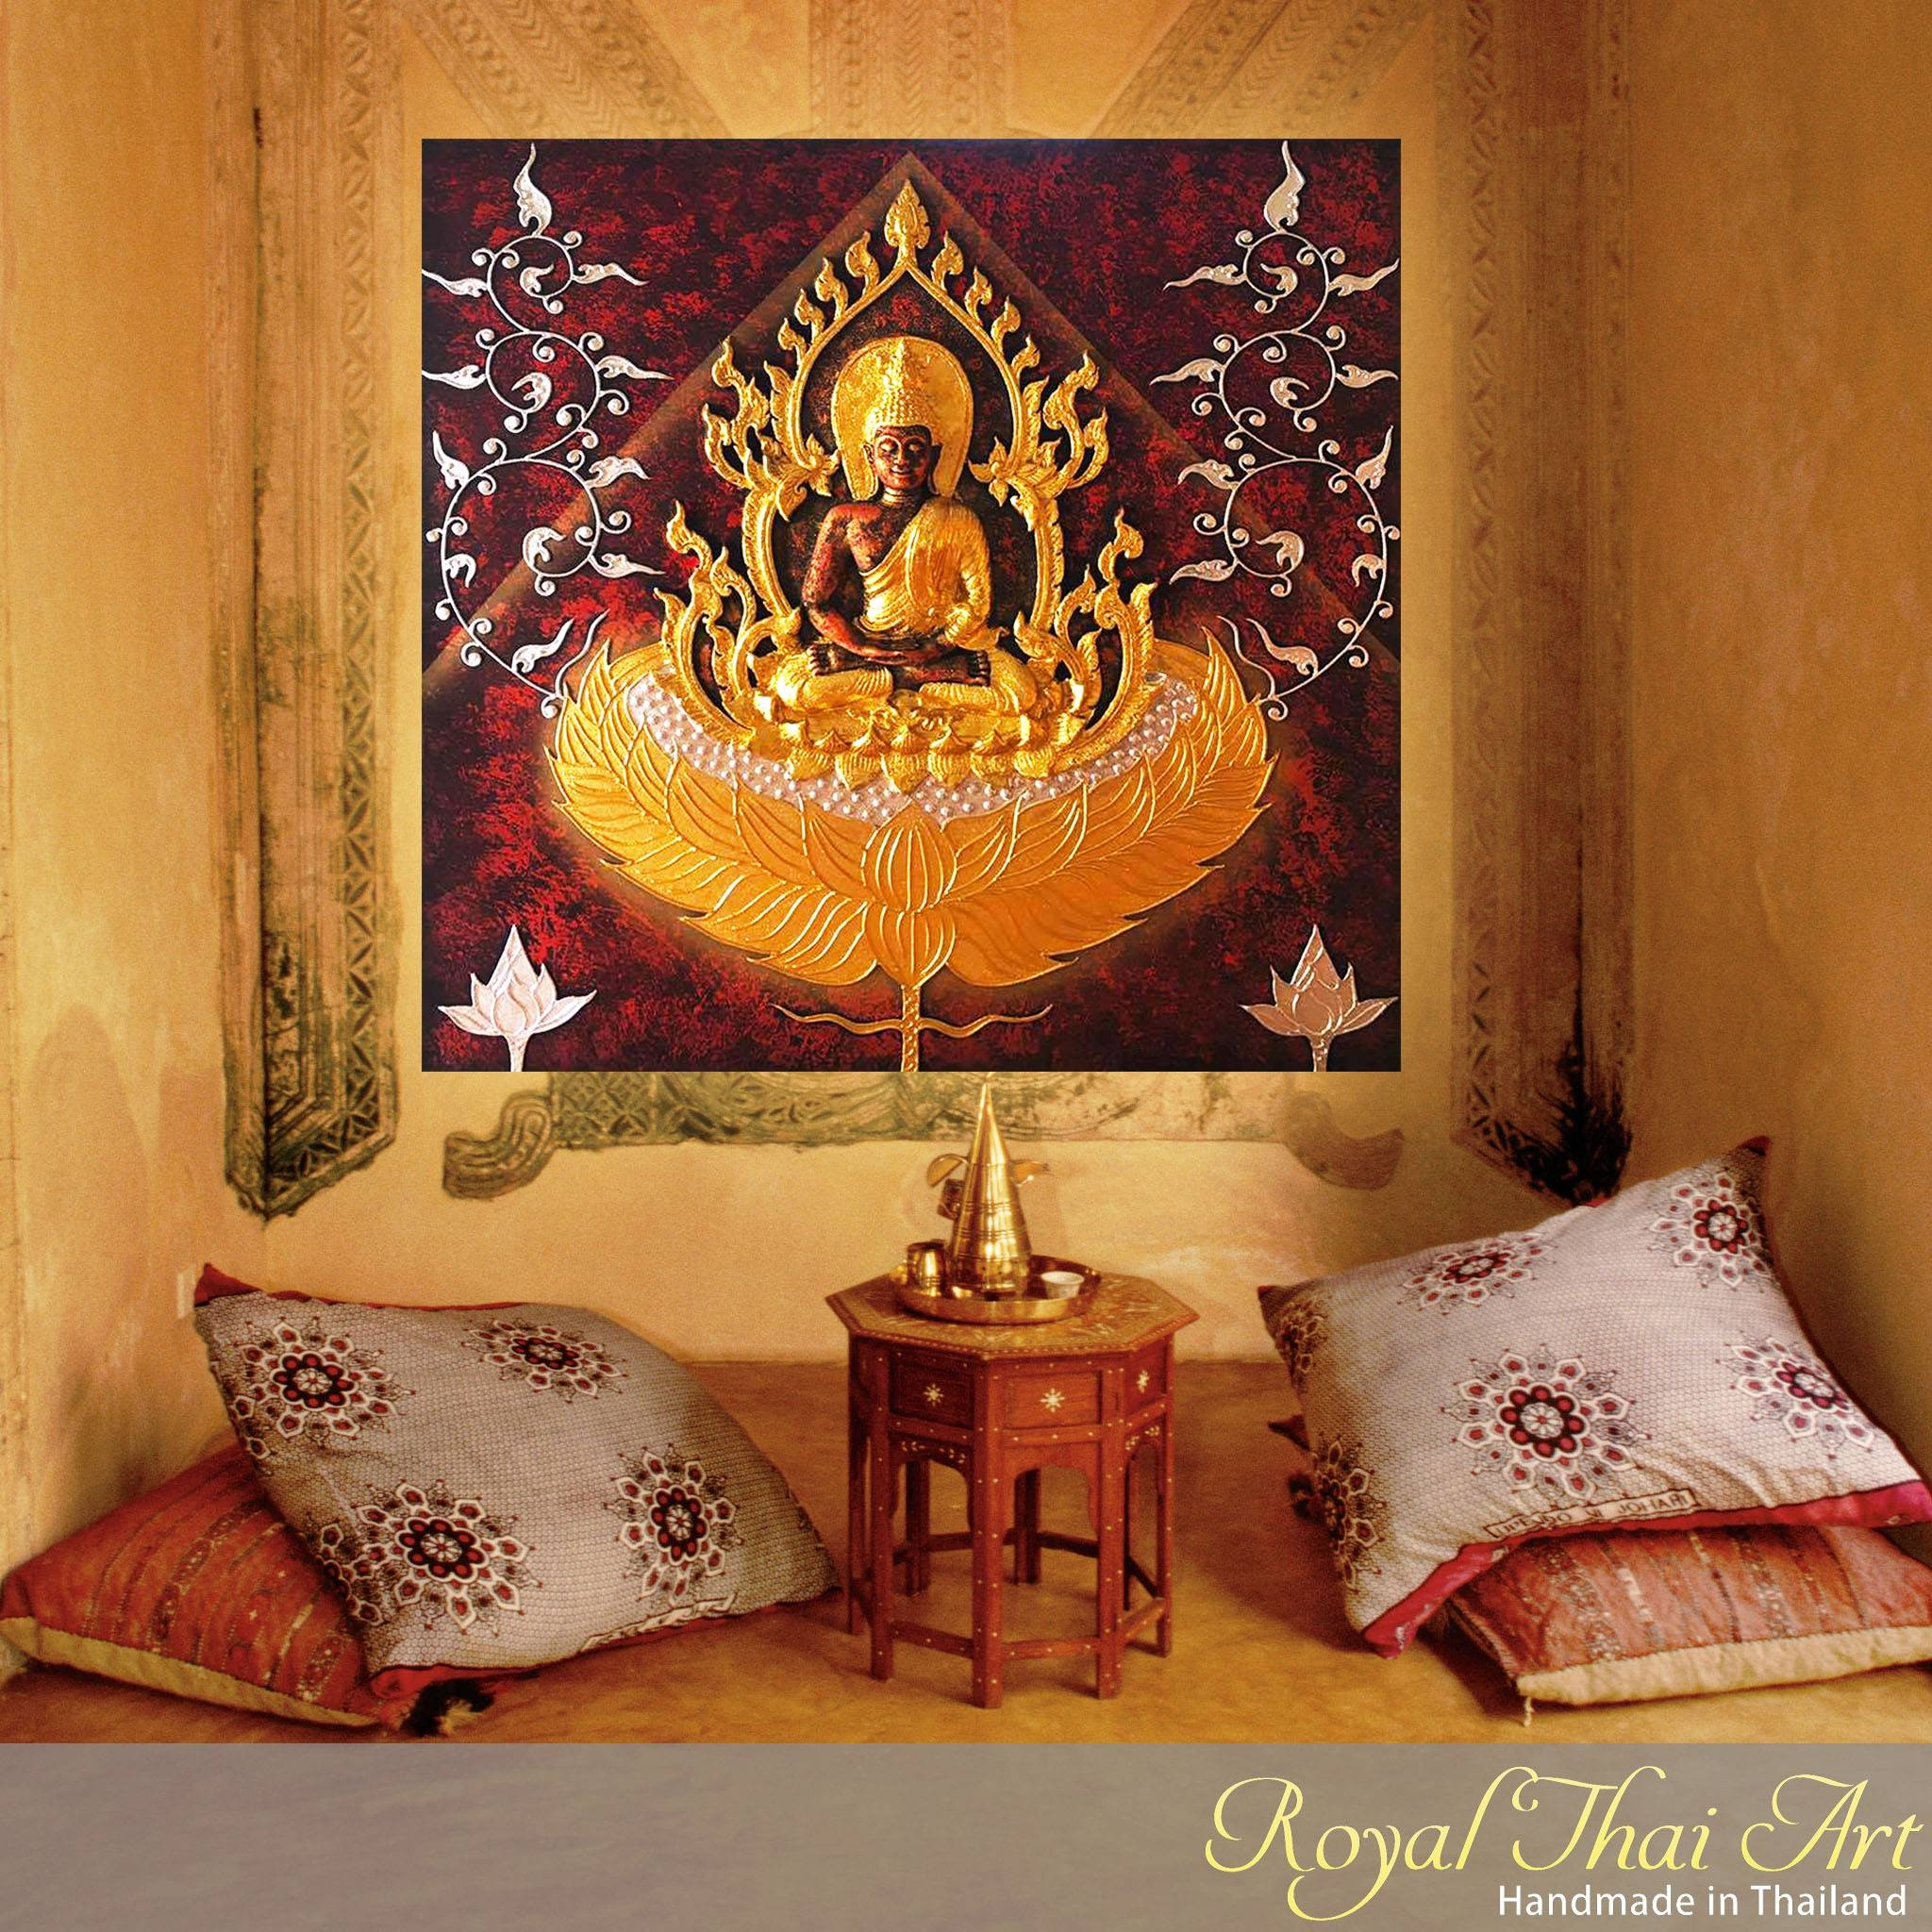 Buddha Painting 3d Handmade Gold Statue | Royal Thai Art Regarding Most Current 3d Buddha Wall Art (View 16 of 20)